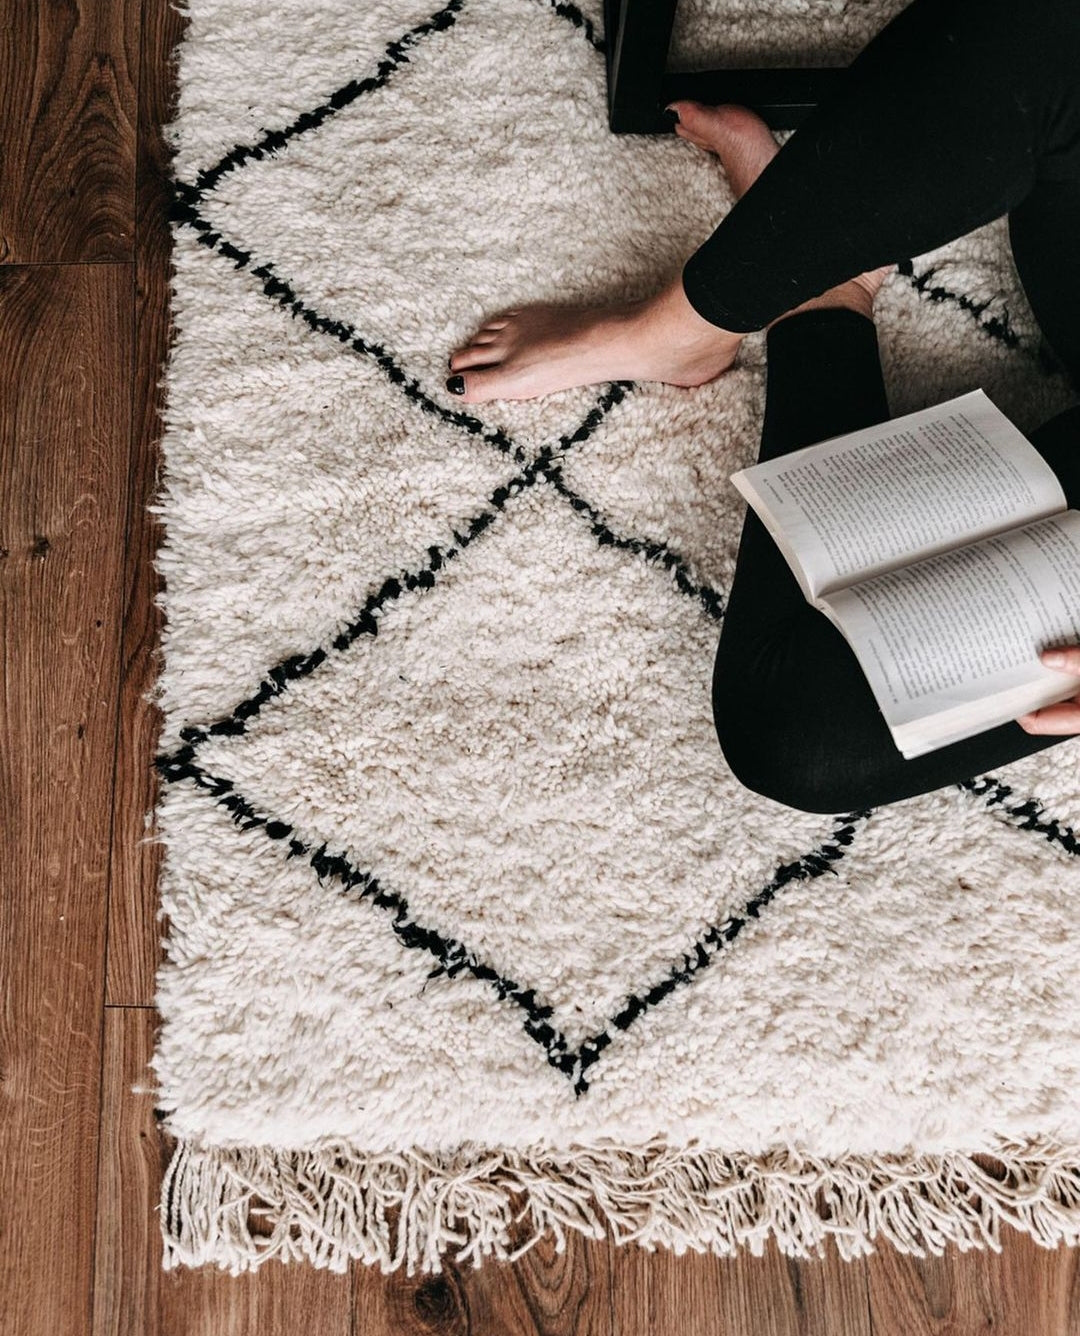 Why buy a handmade Moroccan rug?